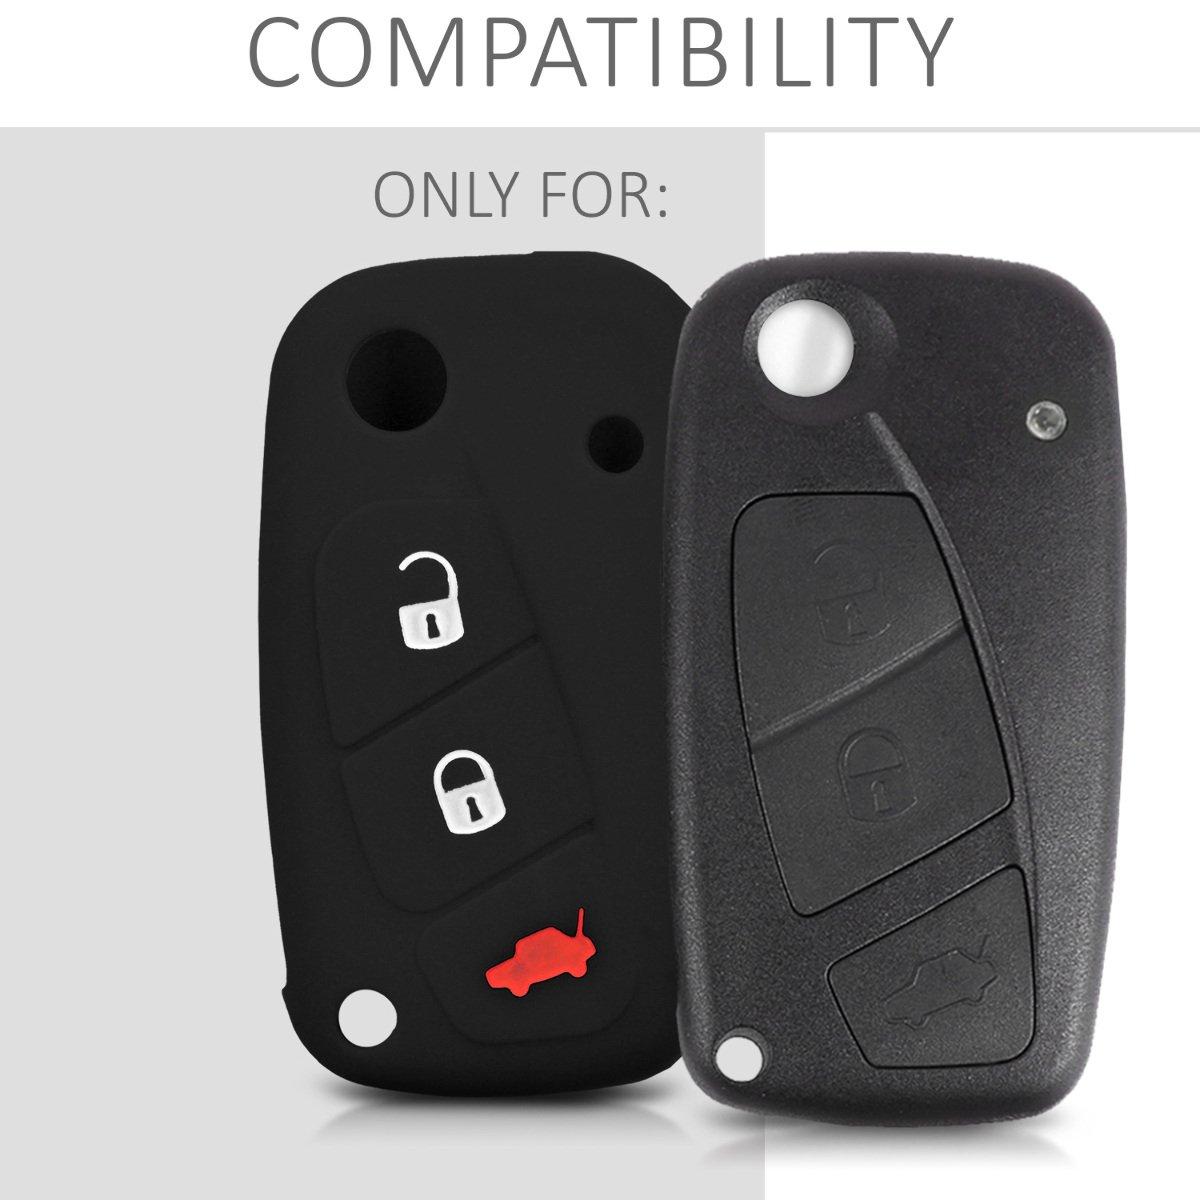 Silicone Protective Key Fob Cover for Fiat Lancia 3 Button Car Key Red//Black kwmobile Car Key Cover for Fiat Lancia